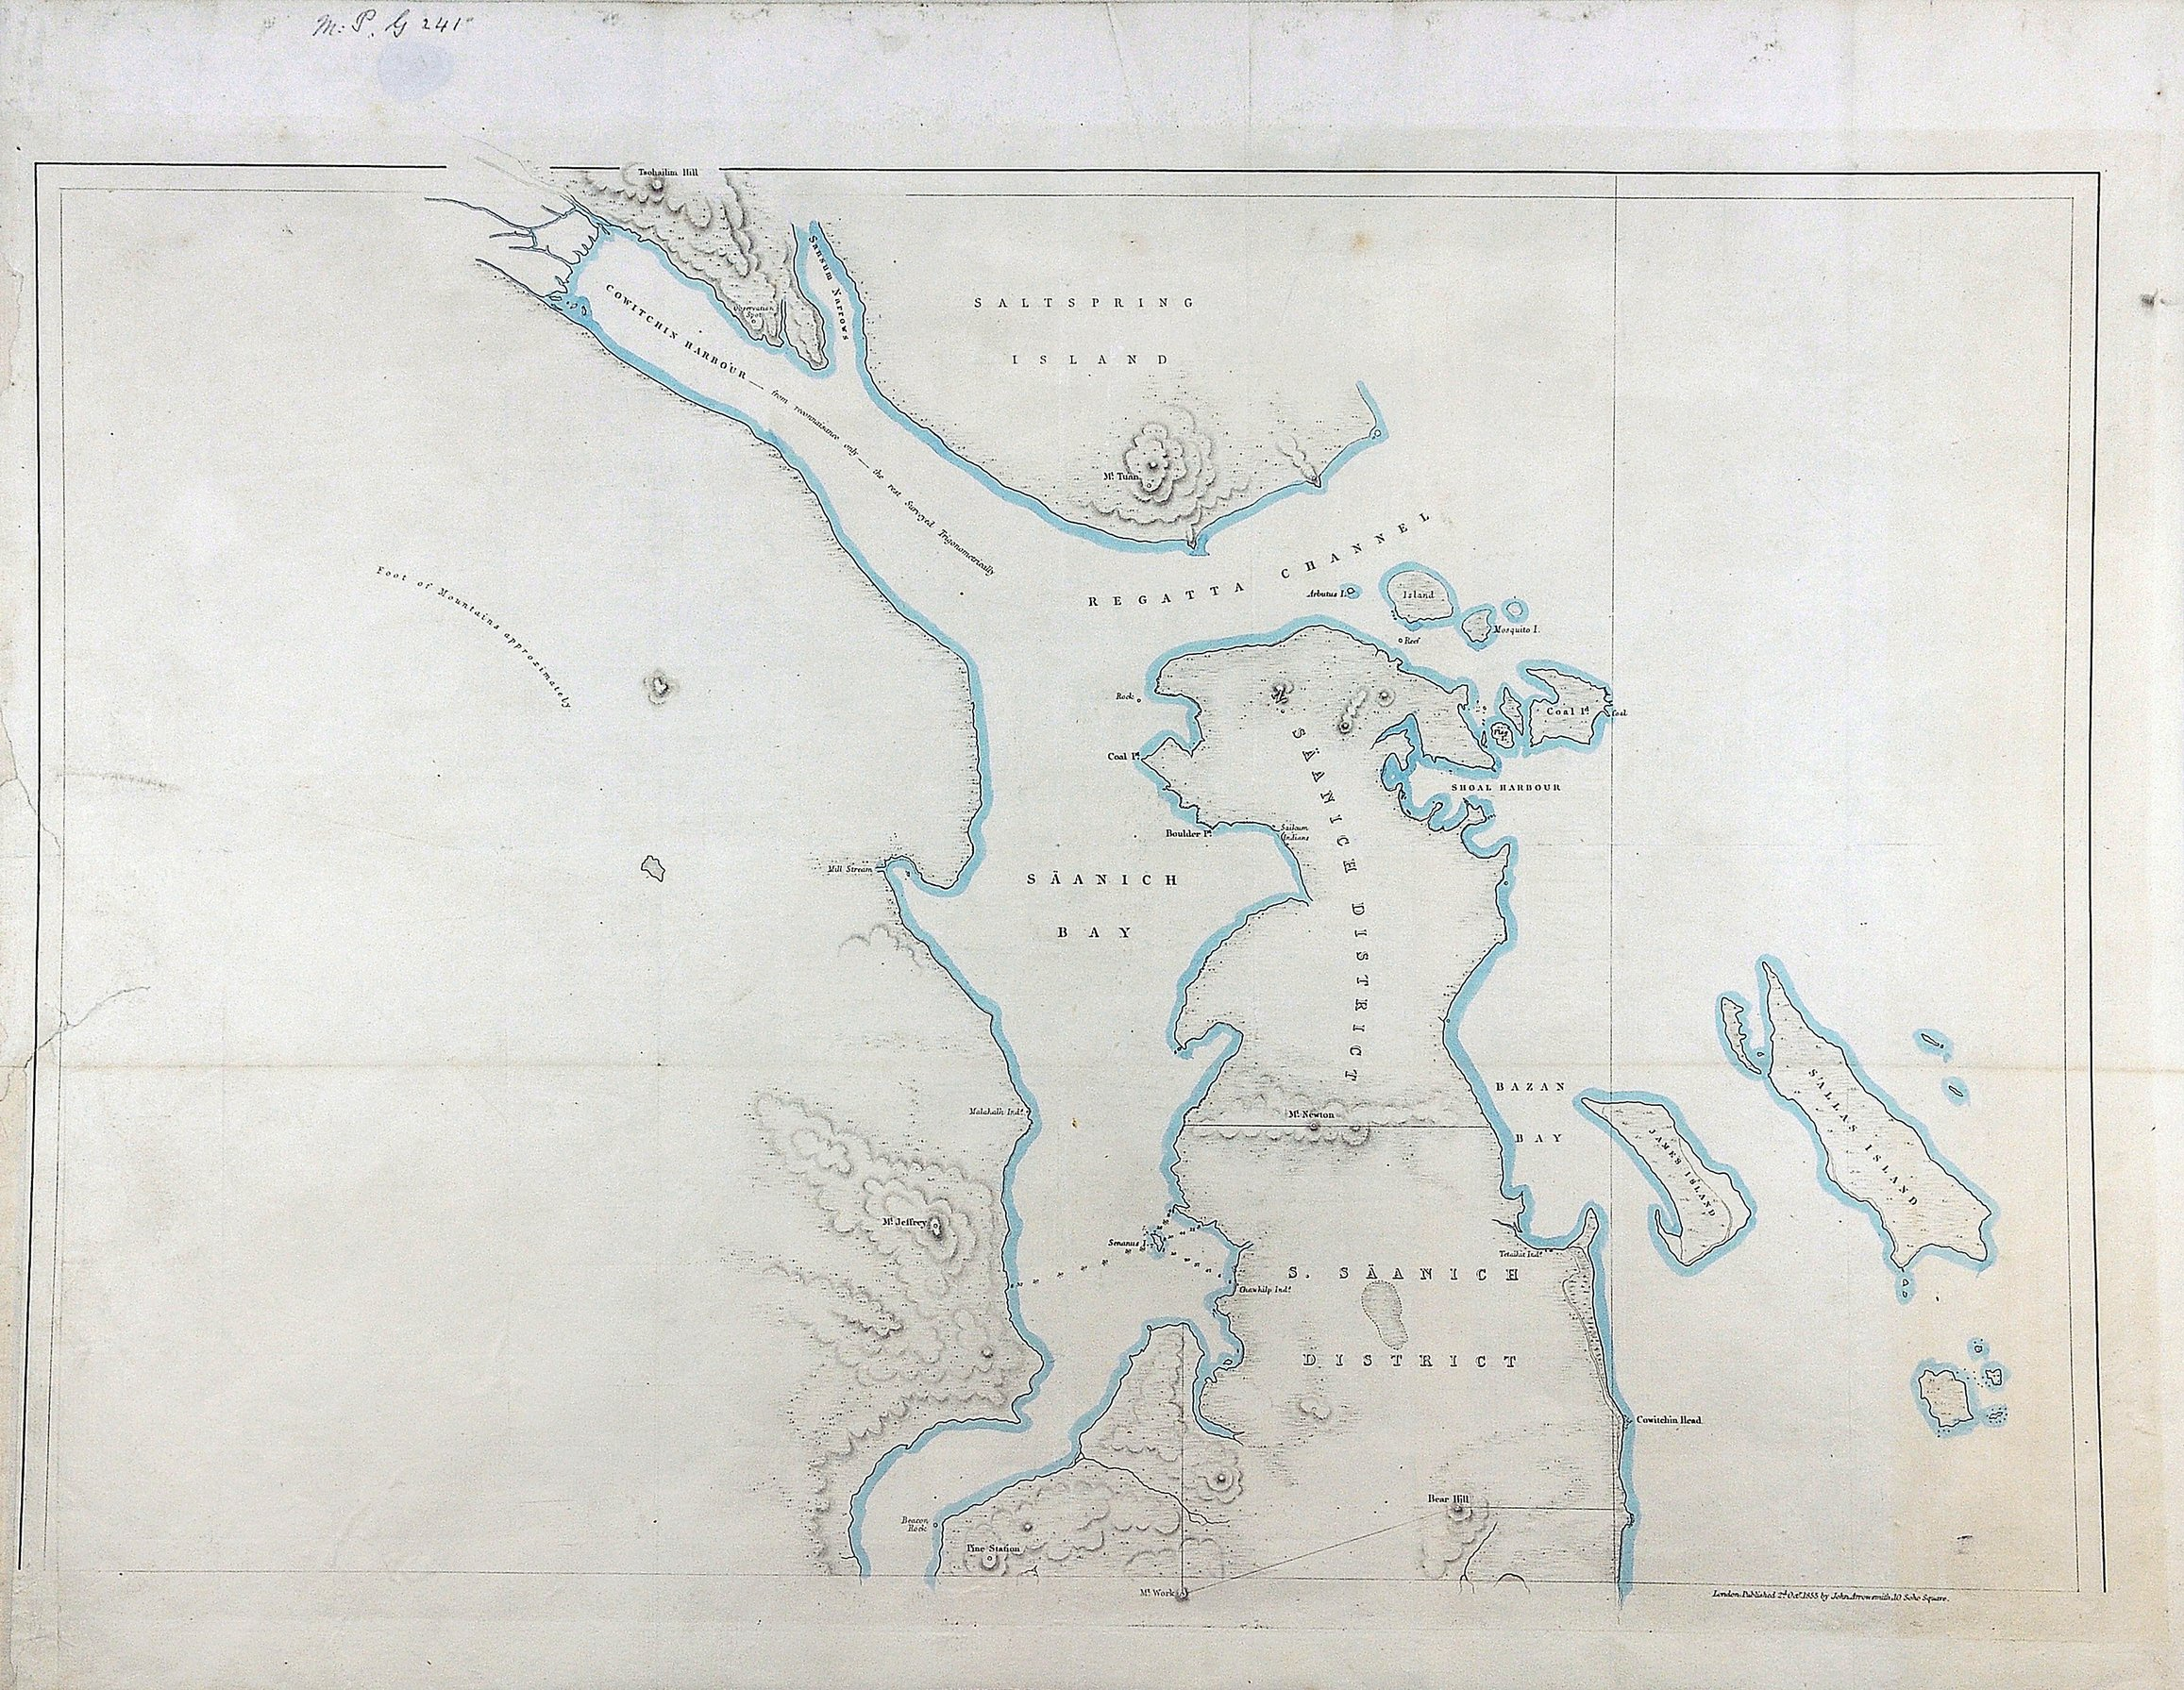 Saanich District [and] South Saanich District, 1855.